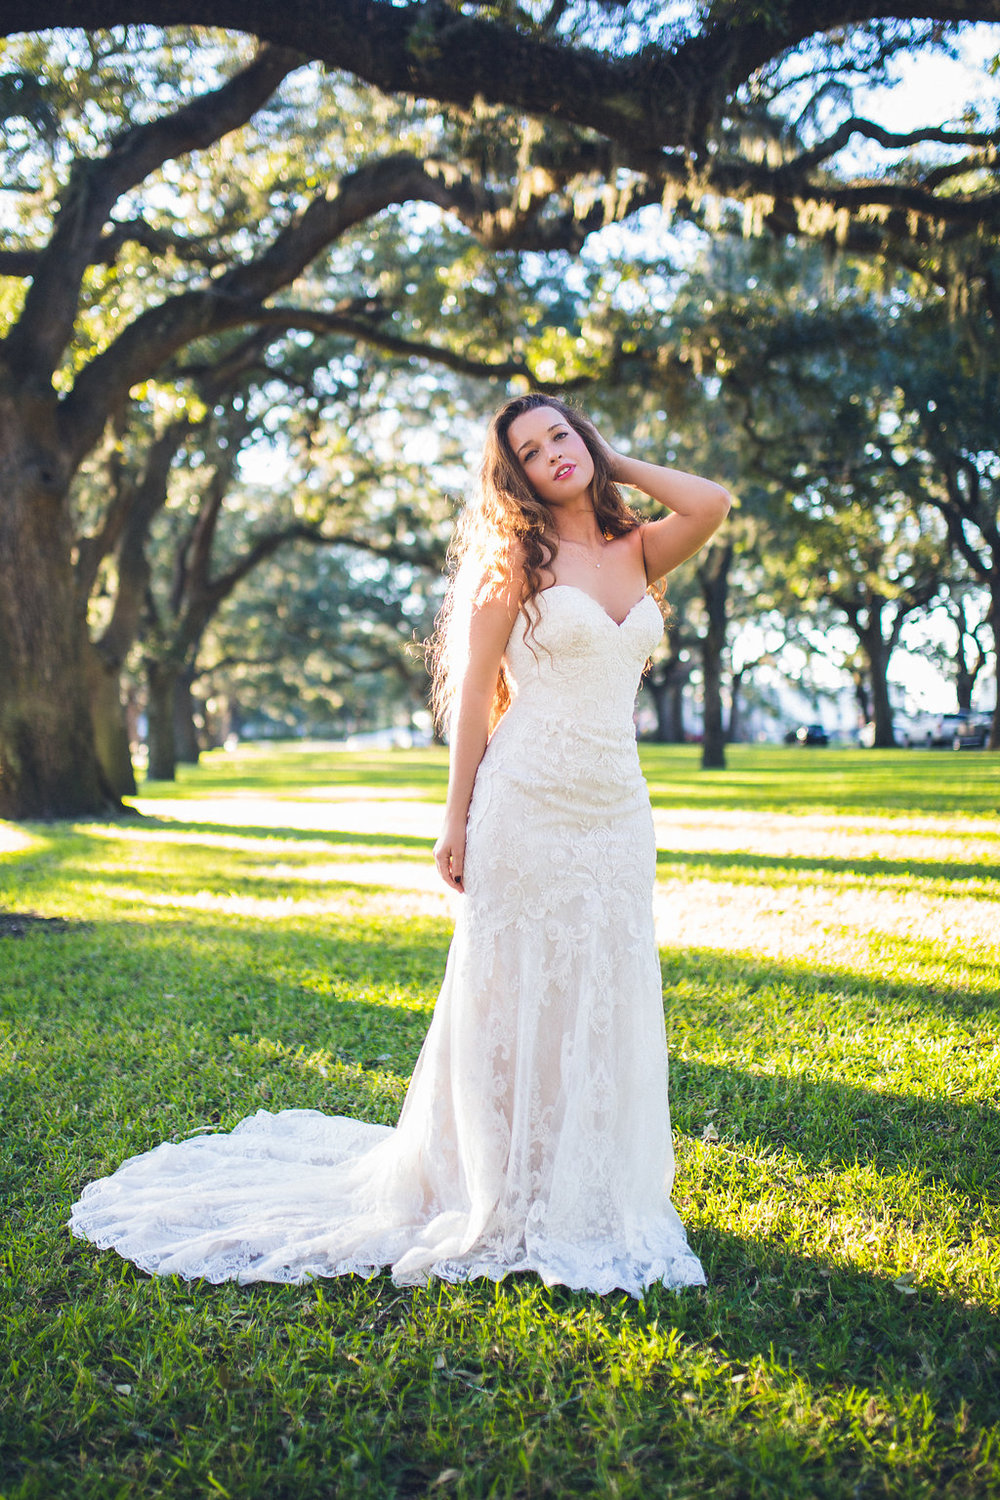 alexis-sweet-photography-ivory-and-beau-bridal-boutique-mirelle--maggie-sottero-rebecca-ingram-lace-mermaid-savannah-wedding-savannah-square-wedding-flower-crown-boho-bride-savannah-wedding-planner-savannah-bridal-boutique-savannah-florist-2.jpg